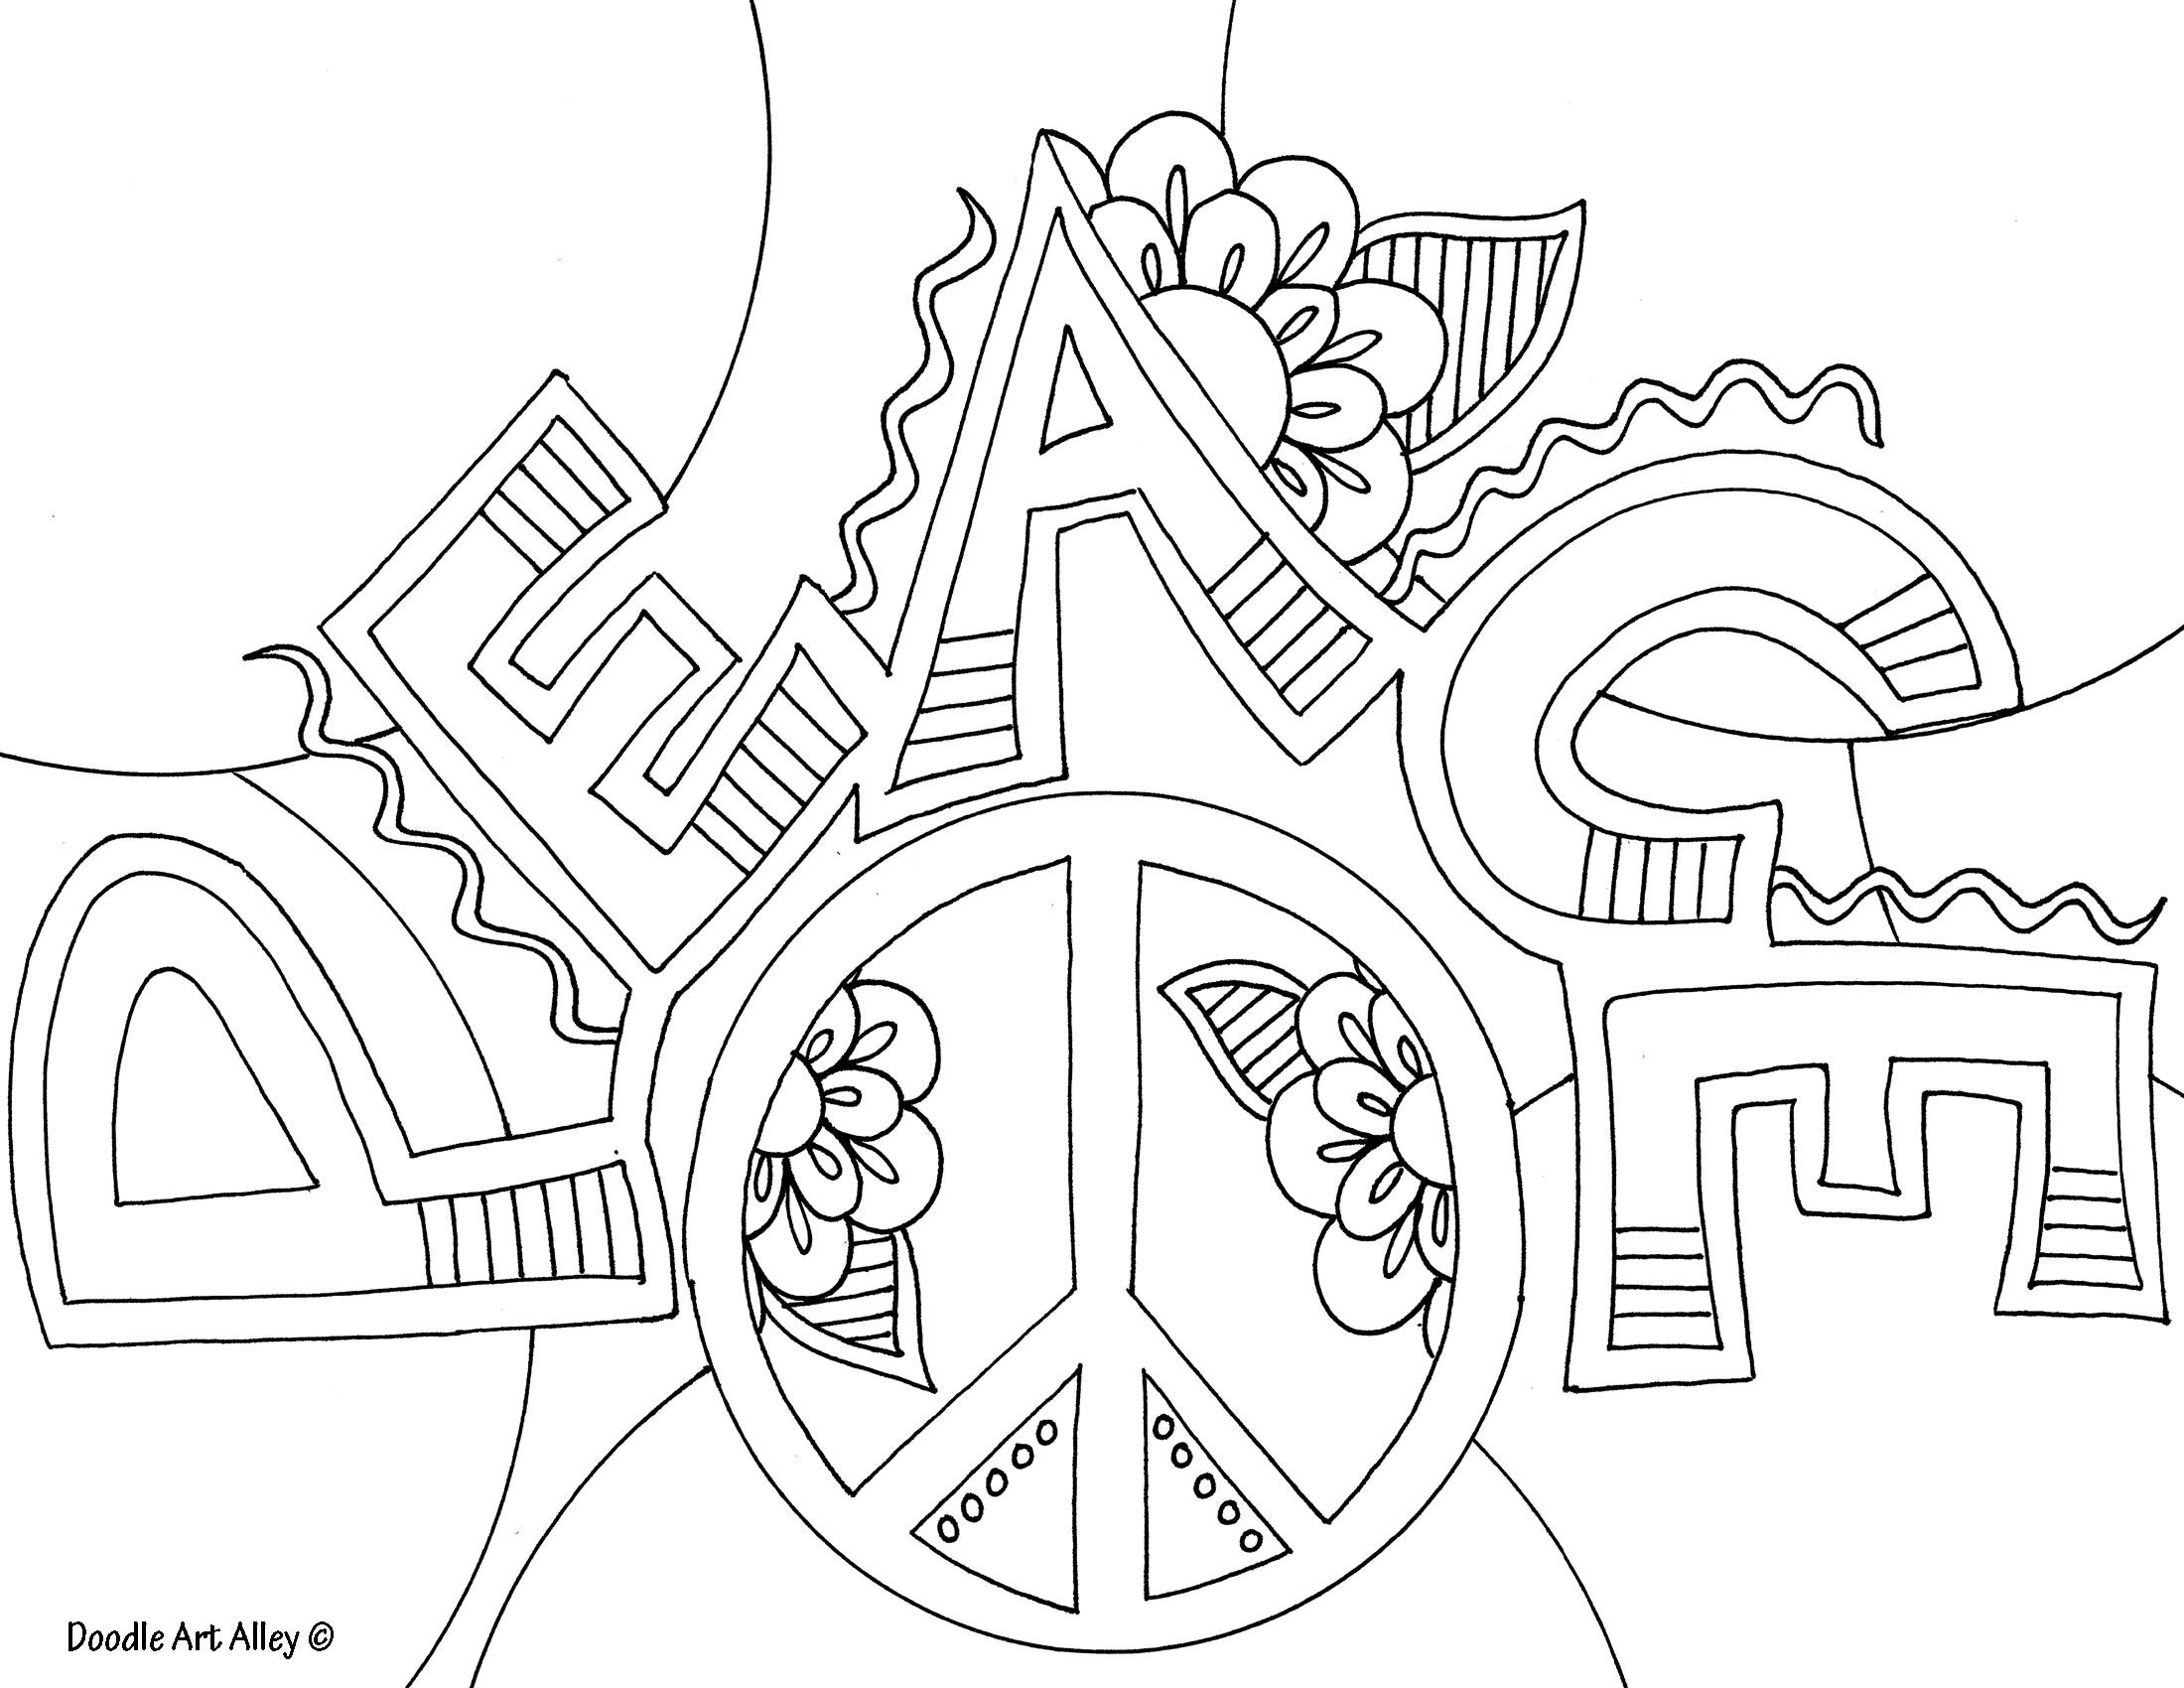 Doodle art alley coloring pages coloring home for Free doodle art coloring pages